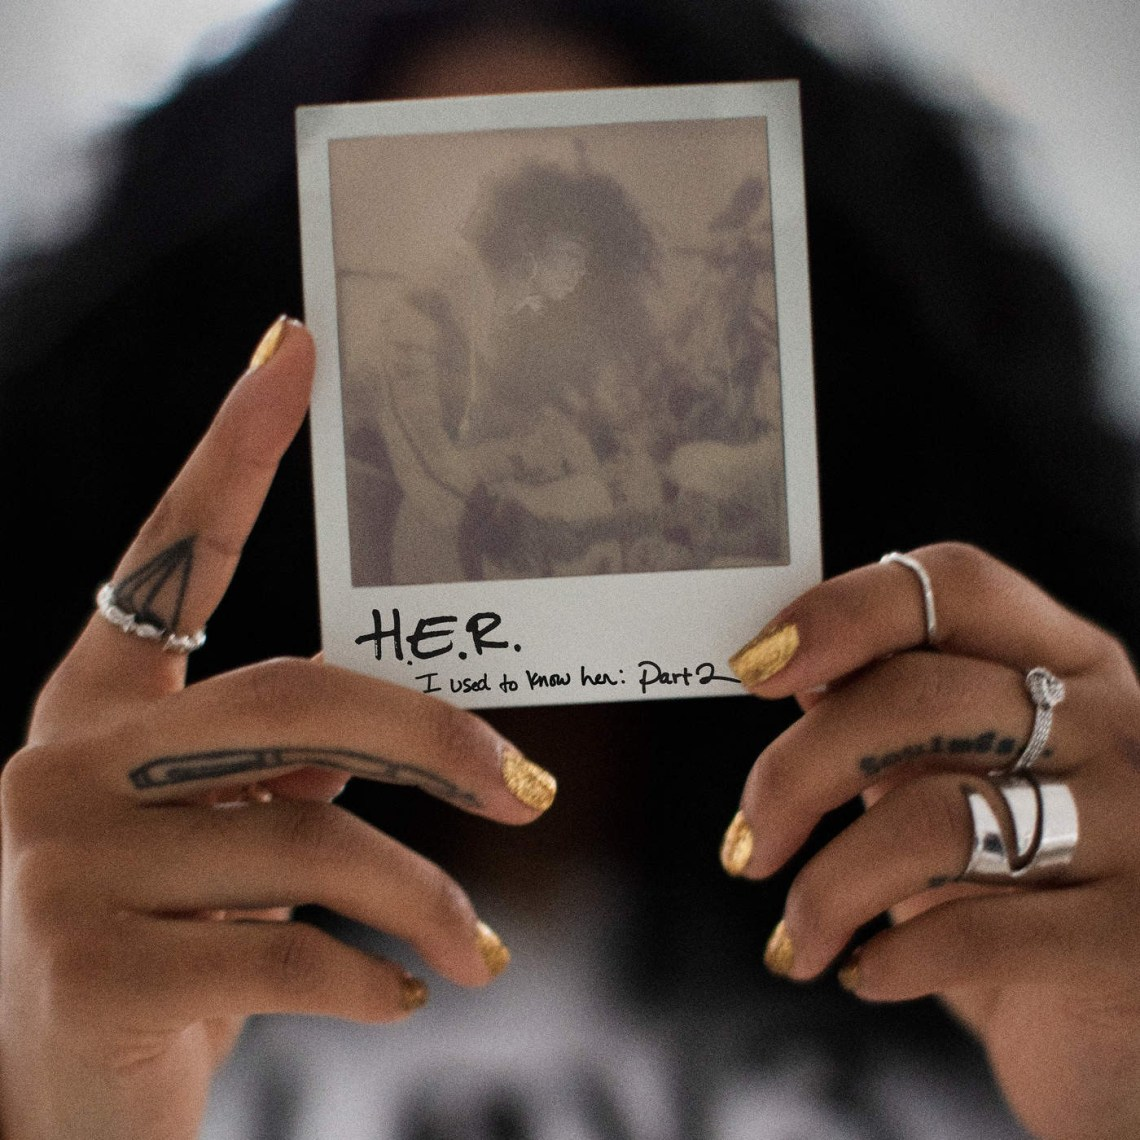 H.E.R-I-Used-to-Know-Her-Part-2-EP